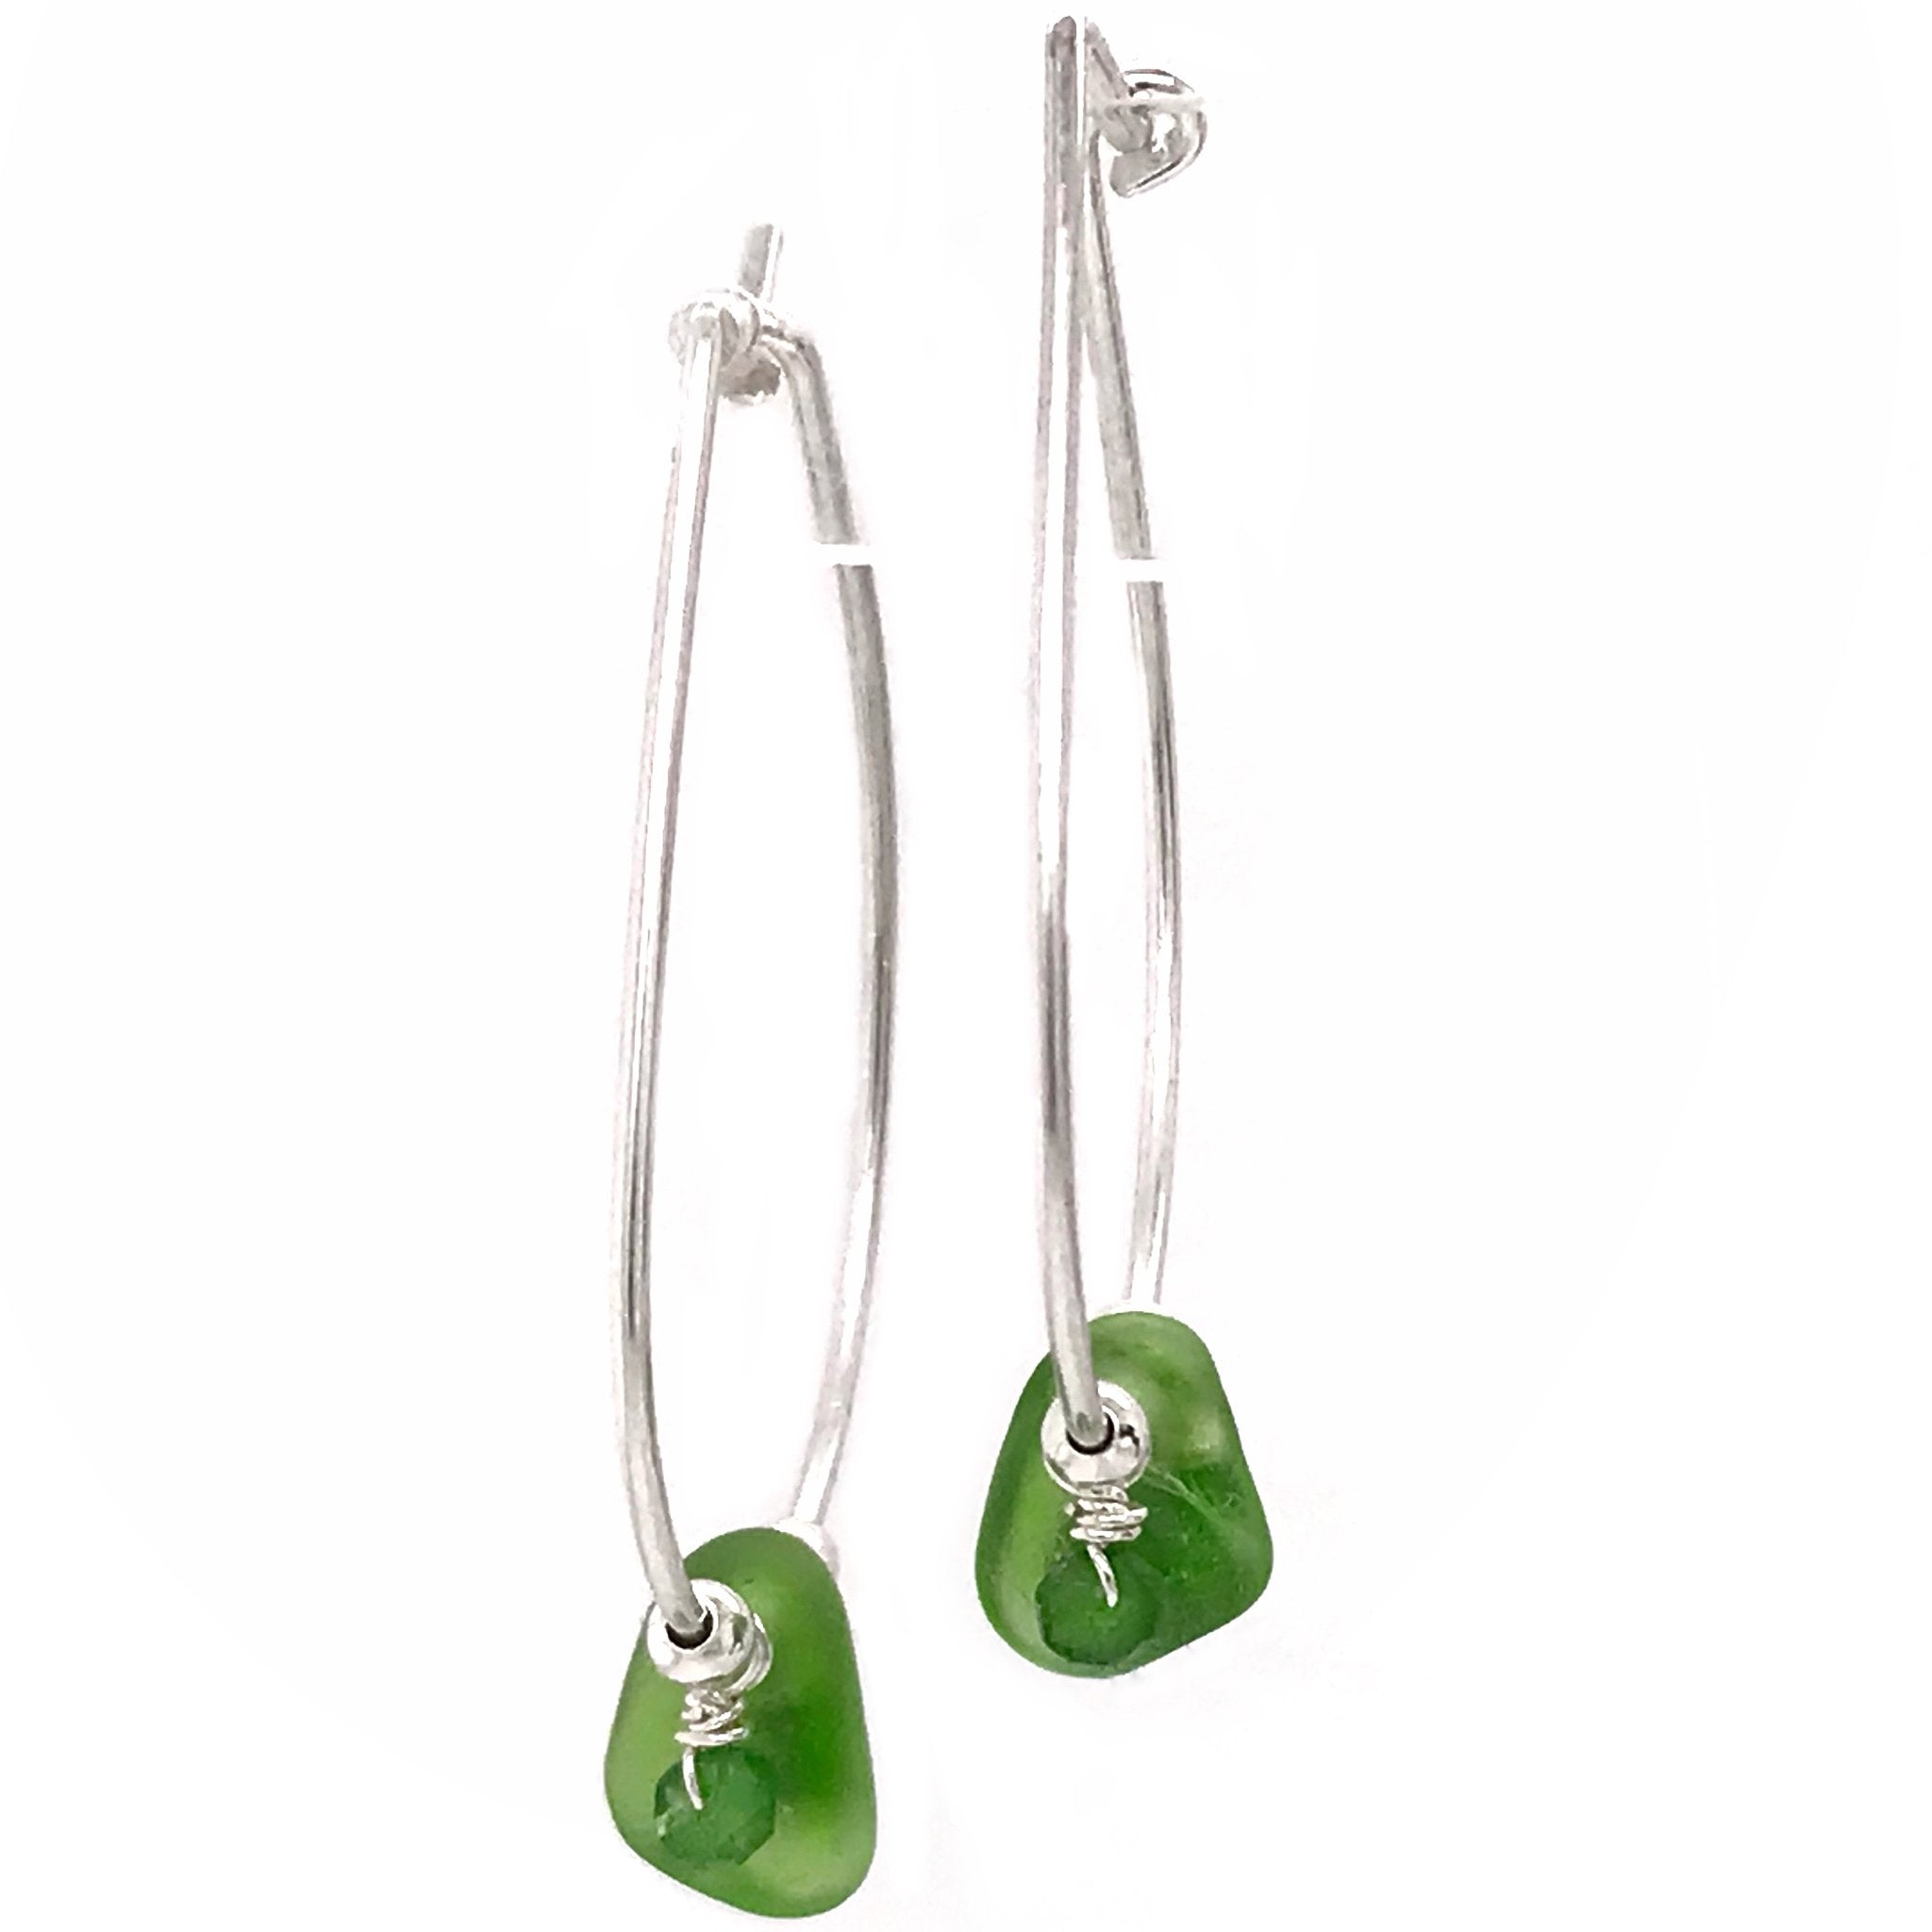 kriket broadhurst jewellery silver hoop earrings with green seaglass